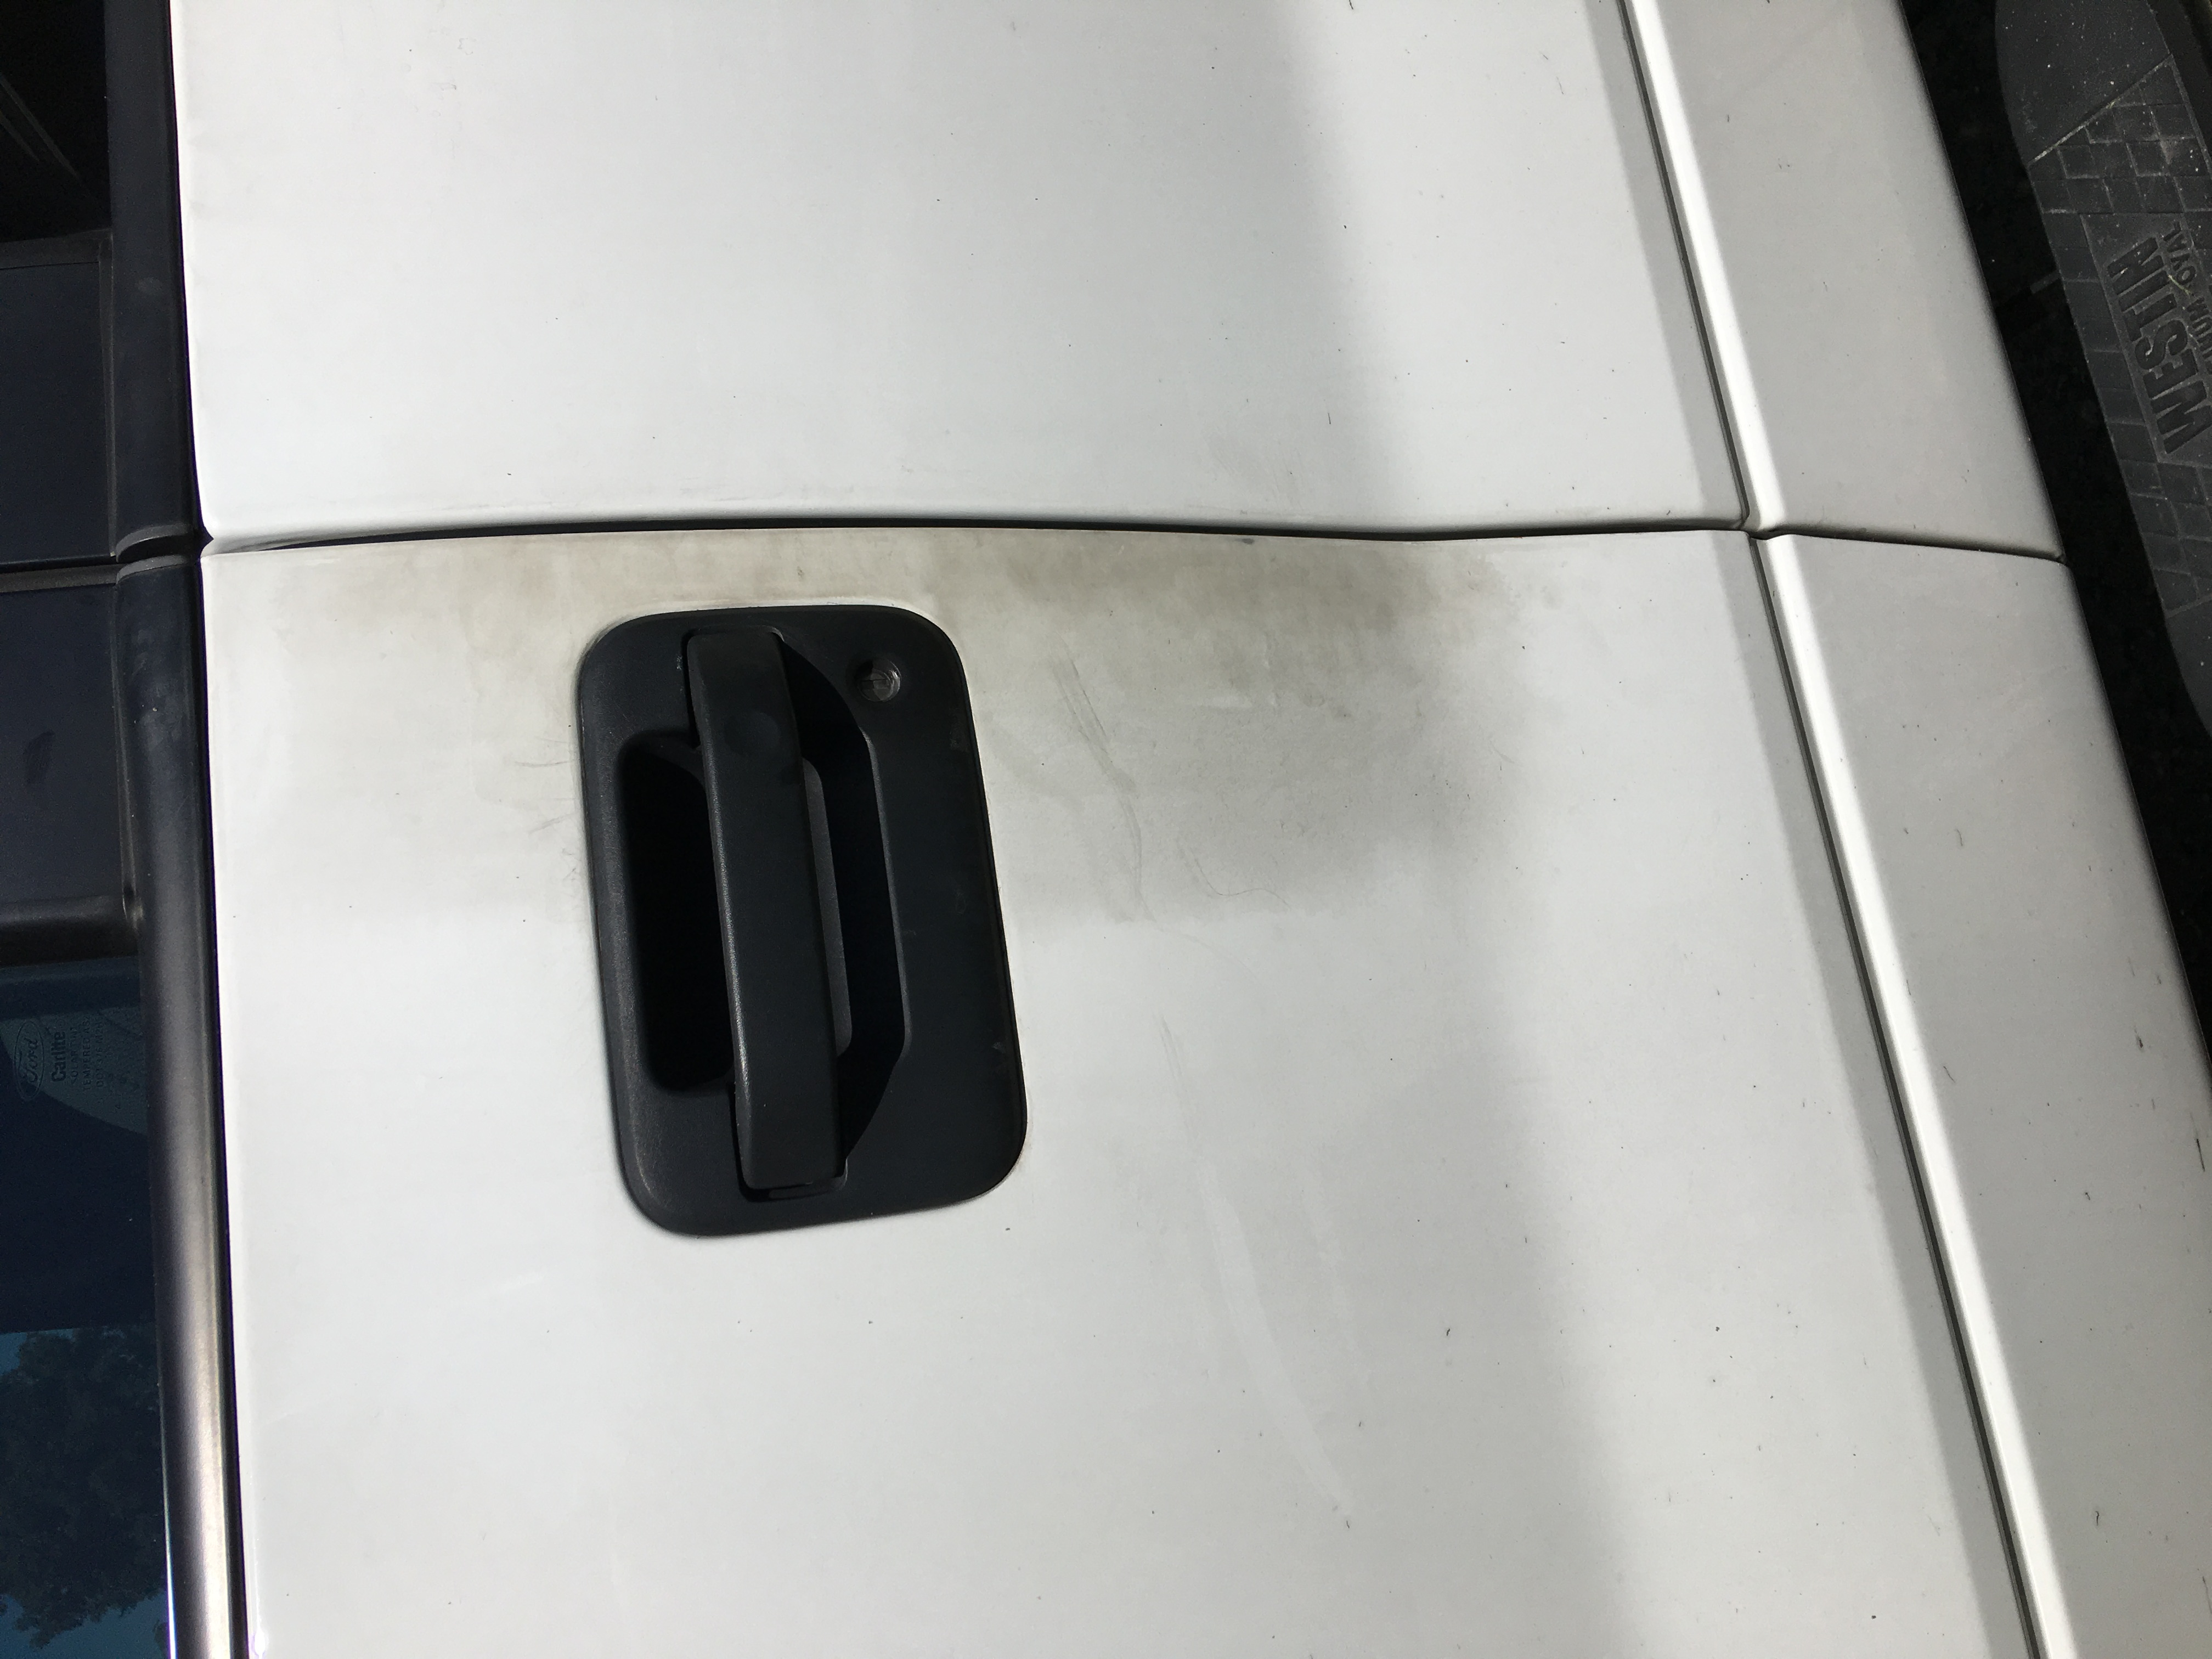 Discoloration issue